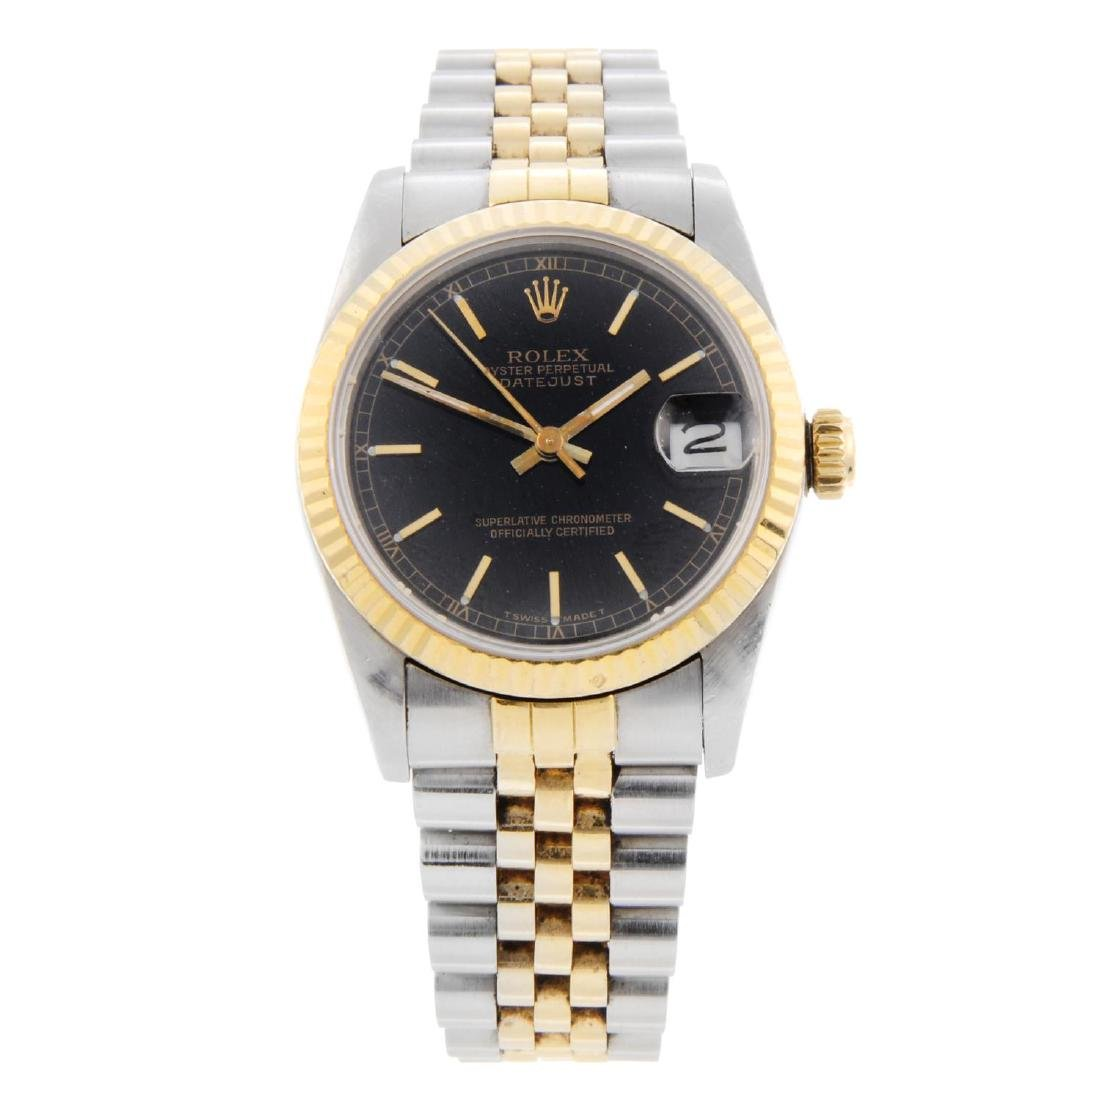 ROLEX - a mid-size Oyster Perpetual Datejust bracelet